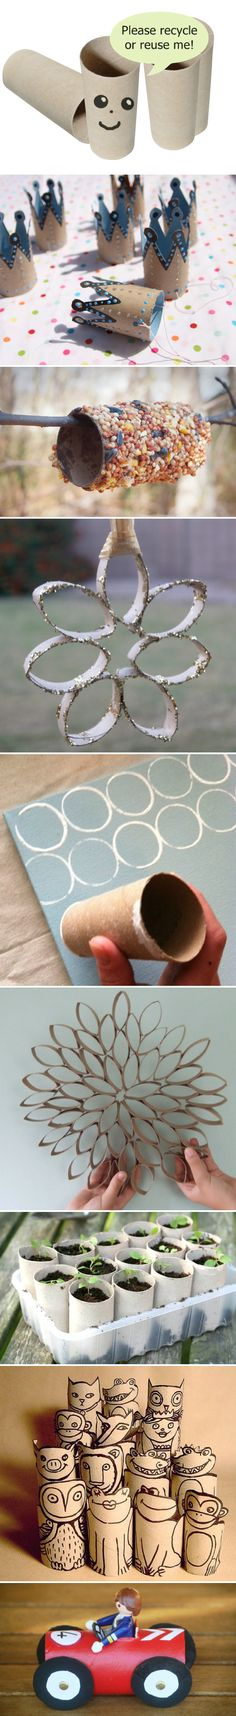 Tons of cute & clever ideas using...toilet paper rolls.  Something my crafty kids would love doing.